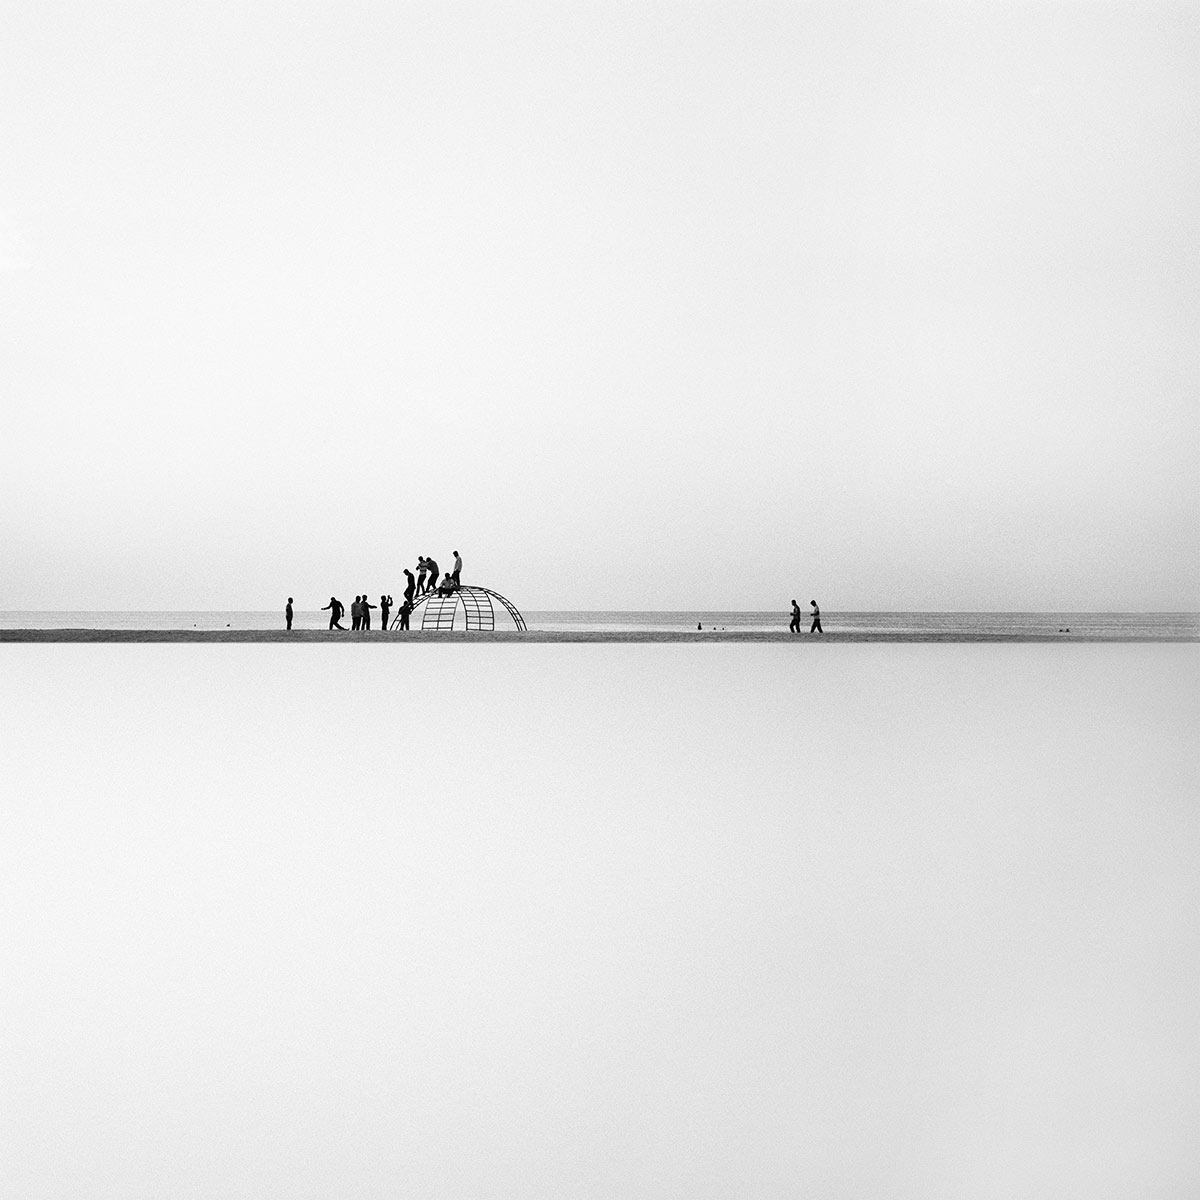 Nicène Kossentini, The city in the Sky IV, 2013. Black and white photography (digital print on Hahnemuhle Fine Art Baryta) 120 x 120 cm. Edition of 5. The City in the Sky series. Courtesy of the artist.